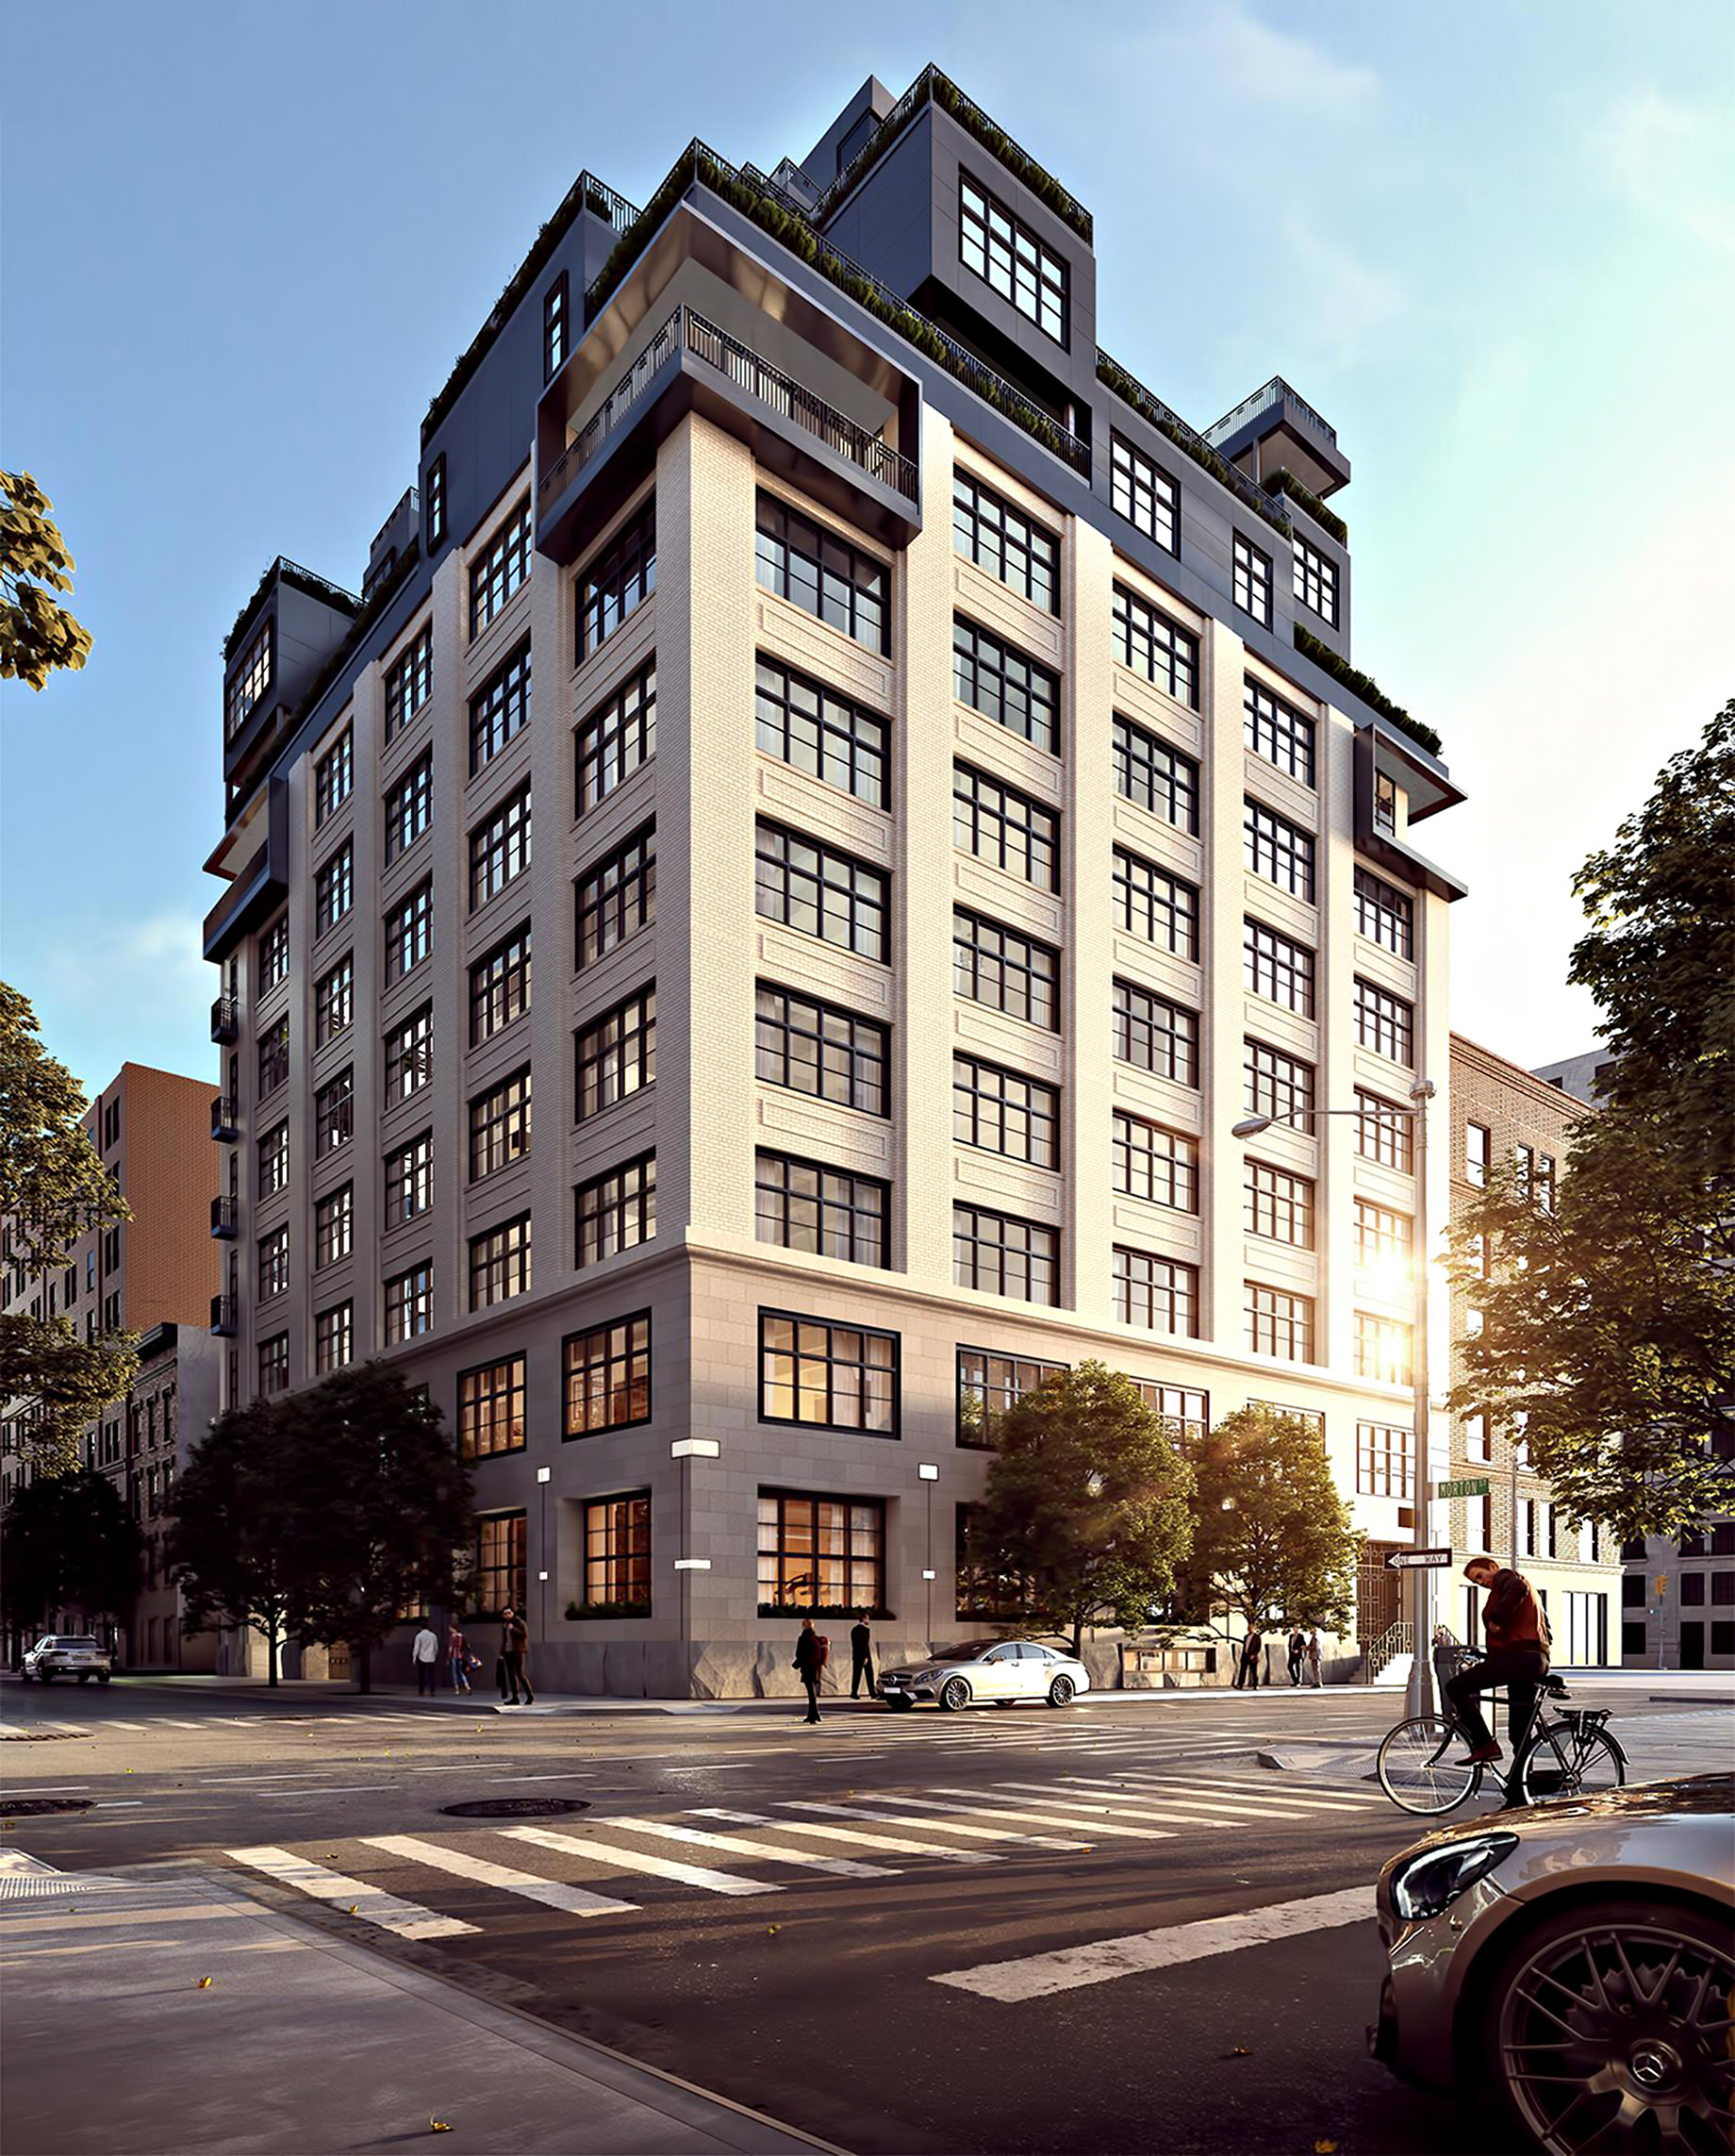 Luxury Lofts - New York City Luxury Real Estate - Why Living in the West Village is a Must